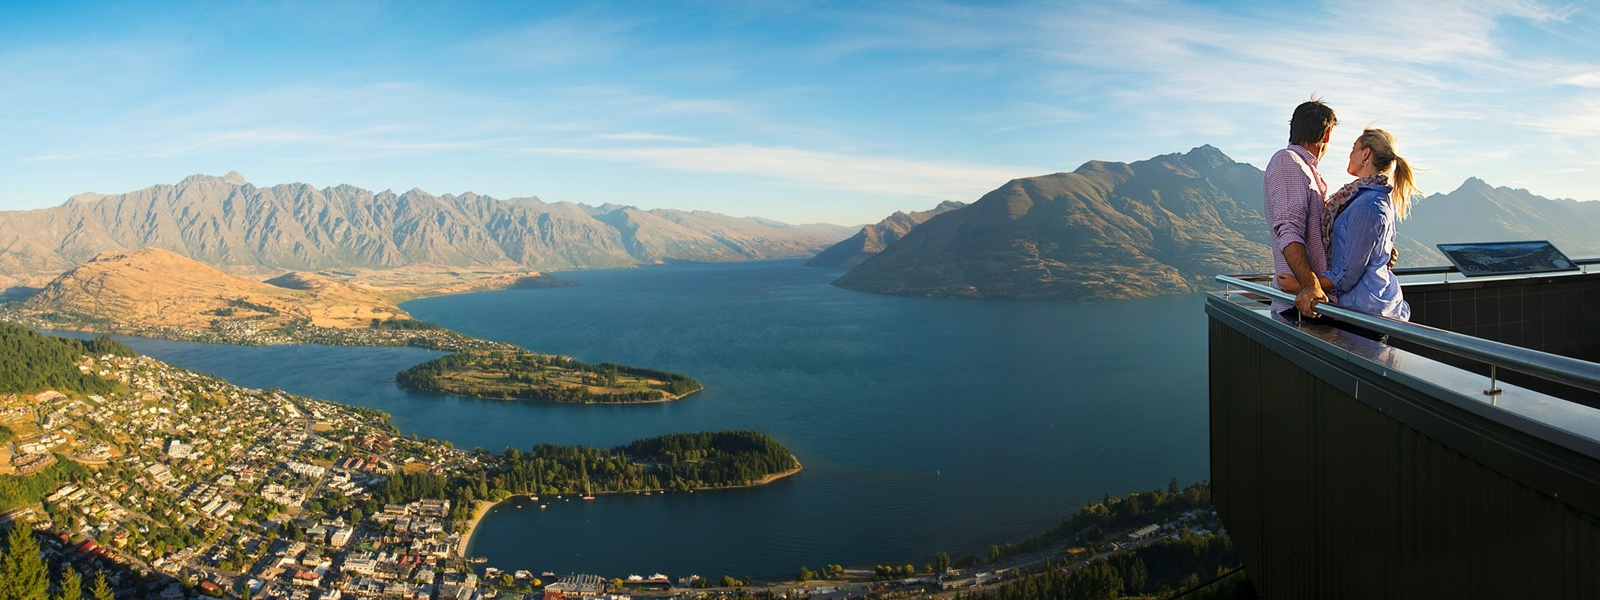 APS2081-APS2111-Queenstown-Queenstown-Julian-Apse.jpg